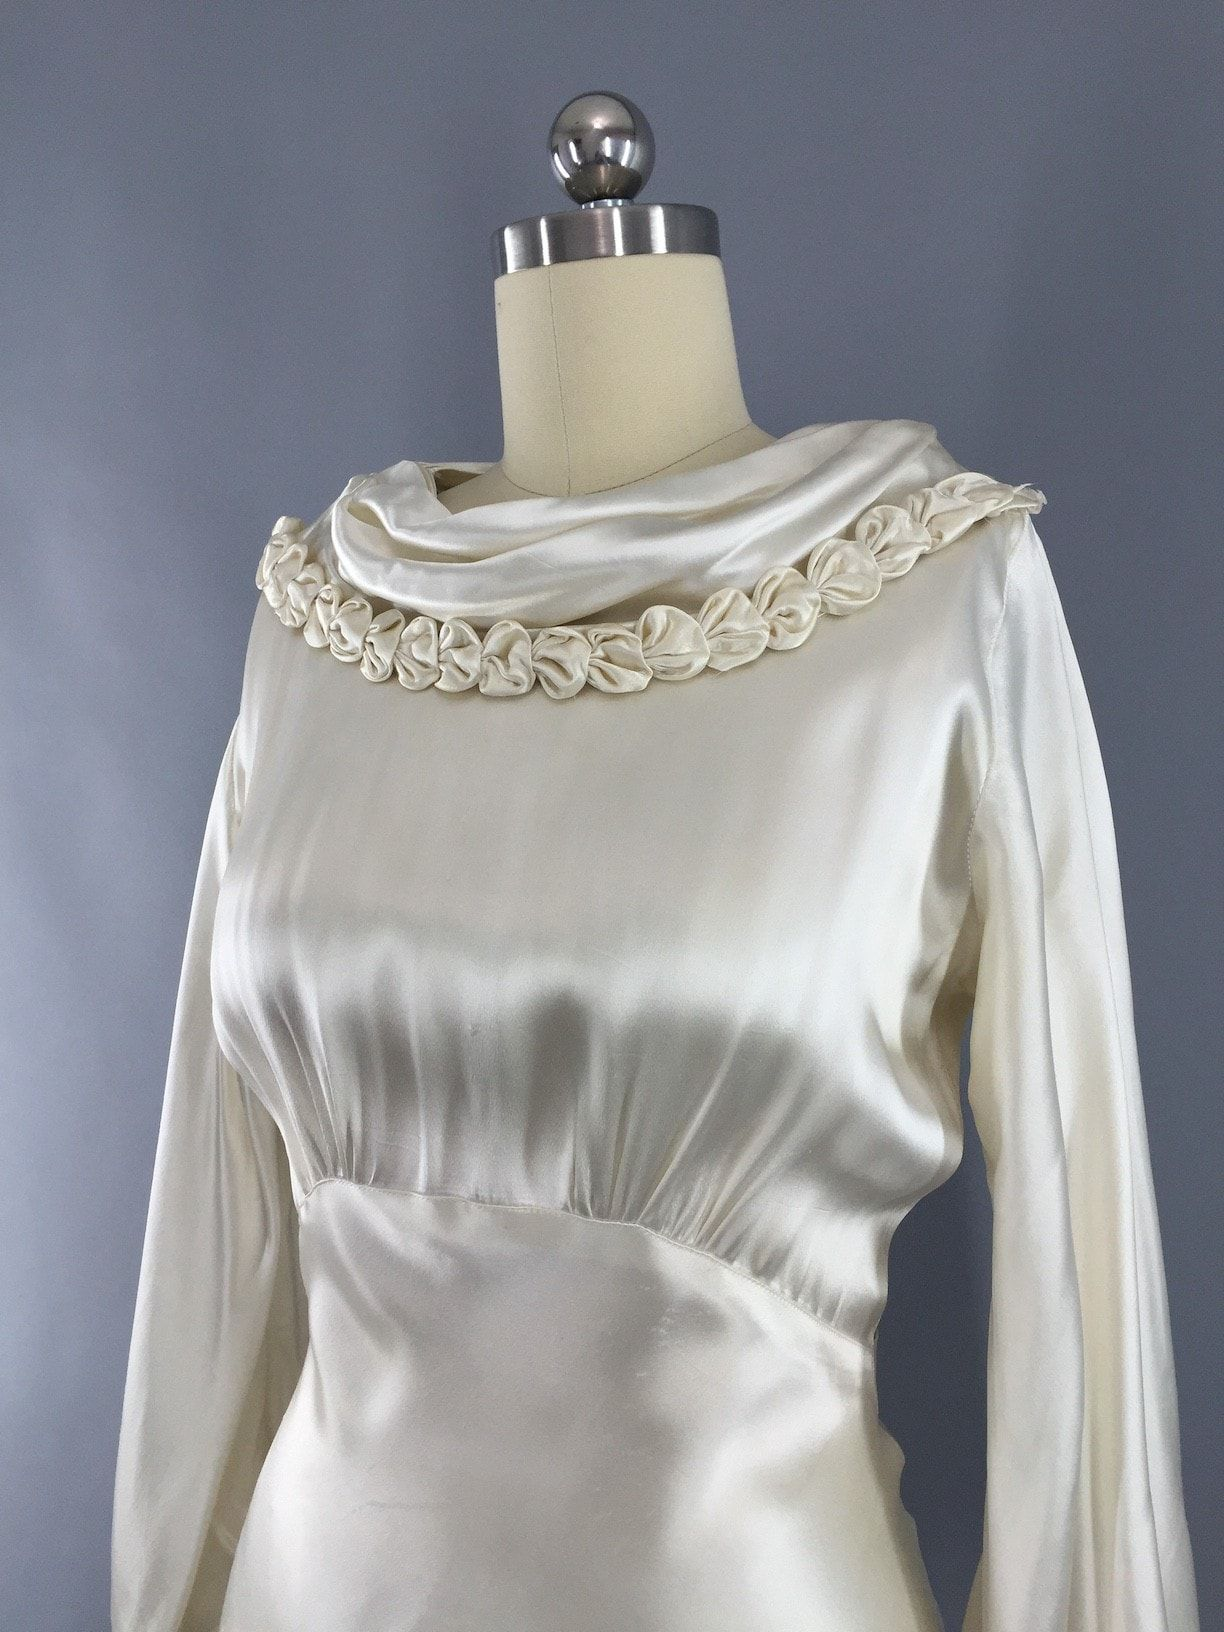 Vintage 1930s Ivory Silk Satin Bias Cut Wedding Dress | Vintage ...